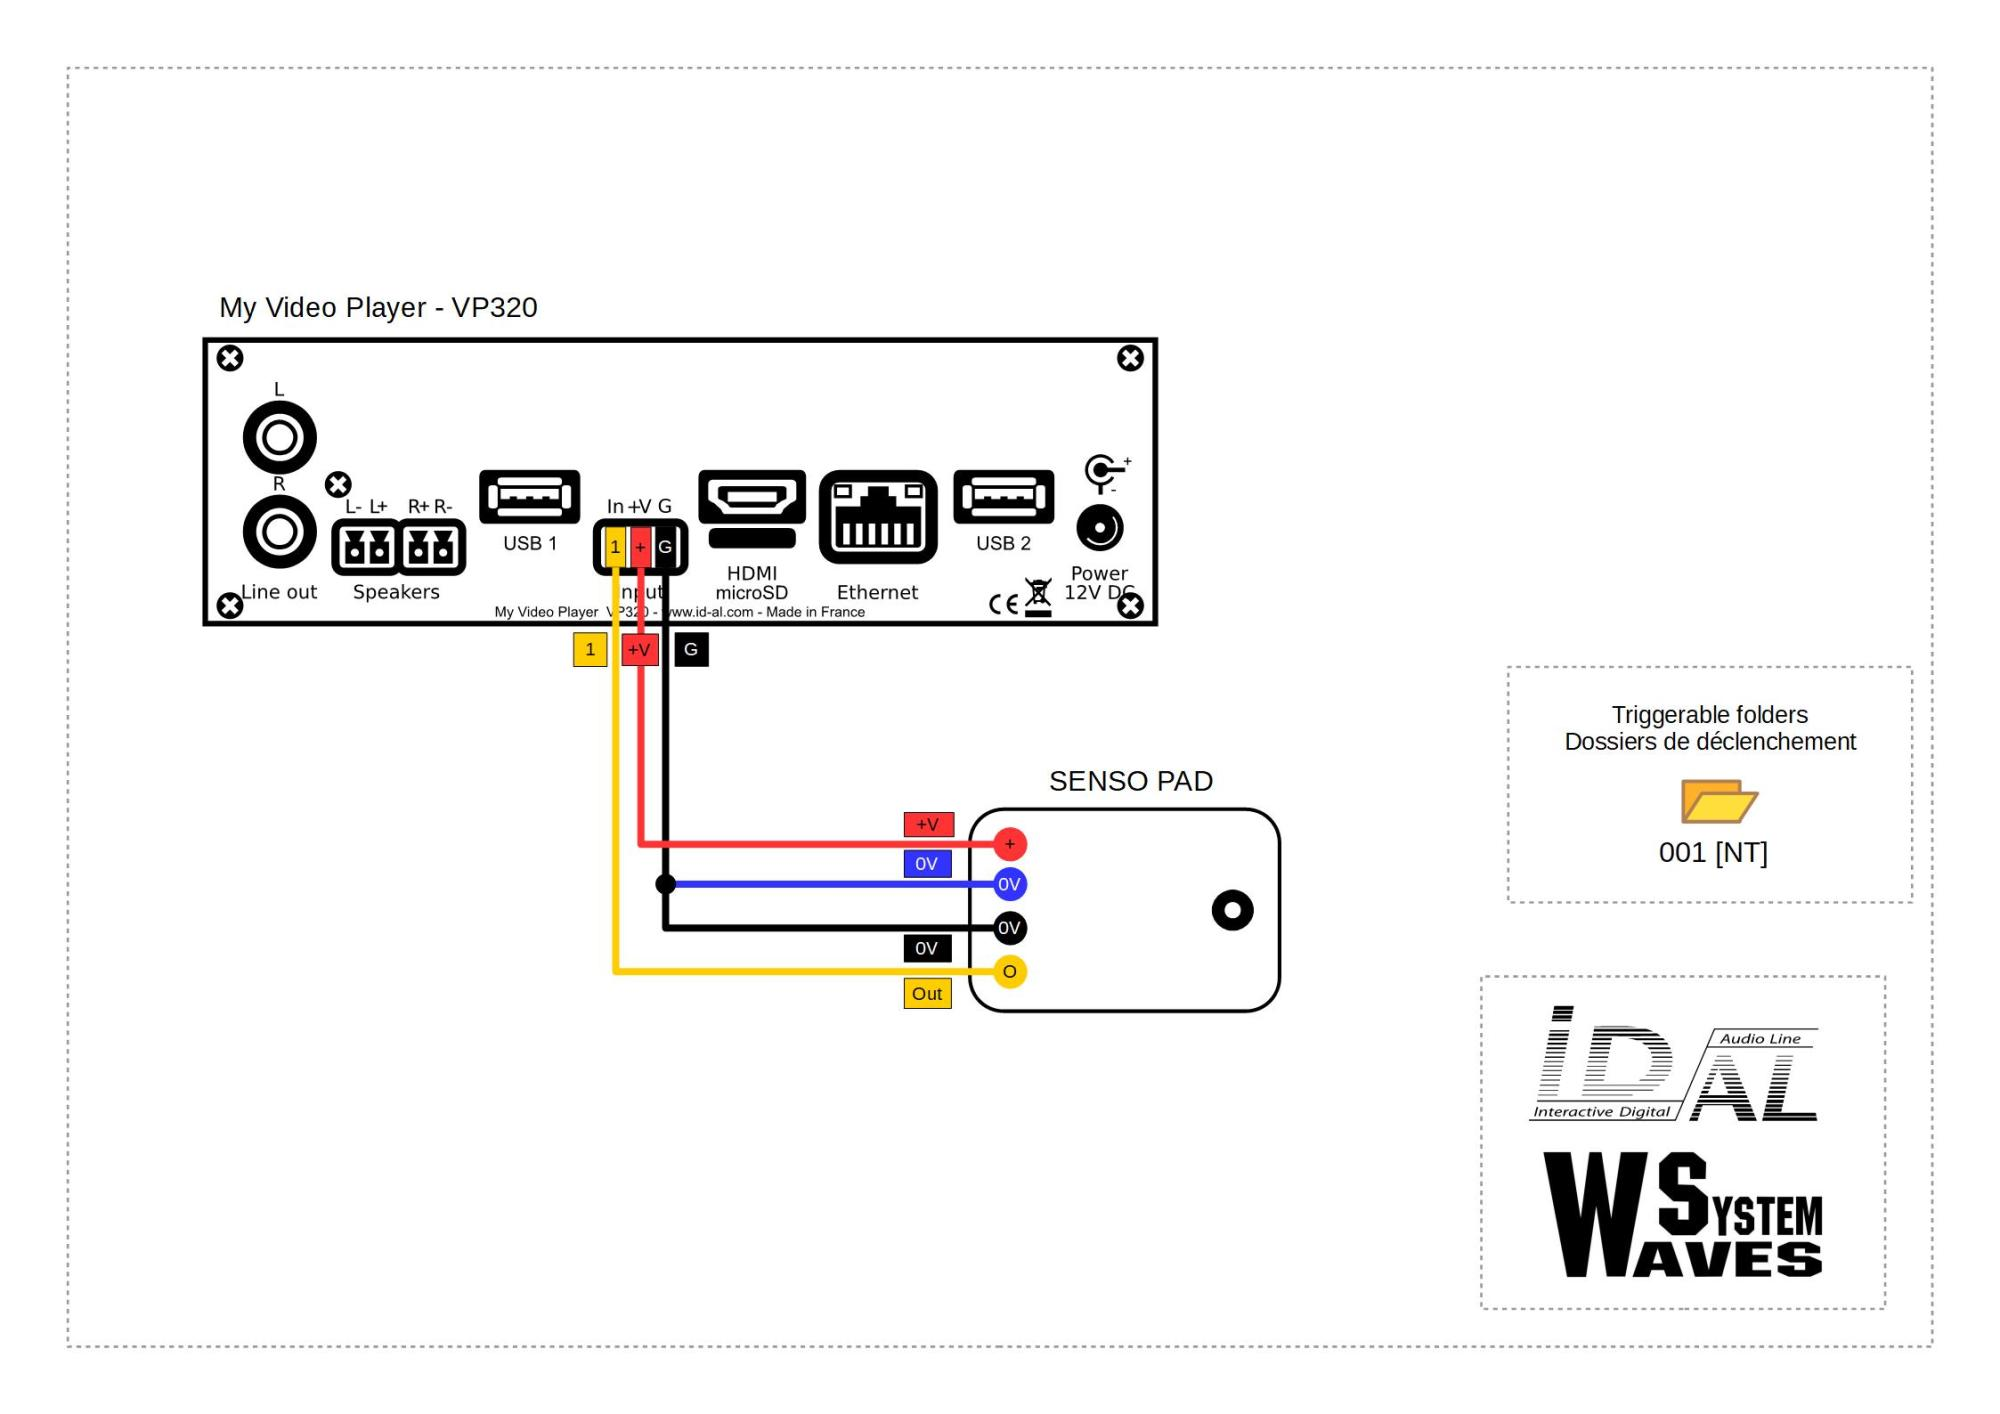 hight resolution of wiring diagram for my video player vp320 connection of a senso pad